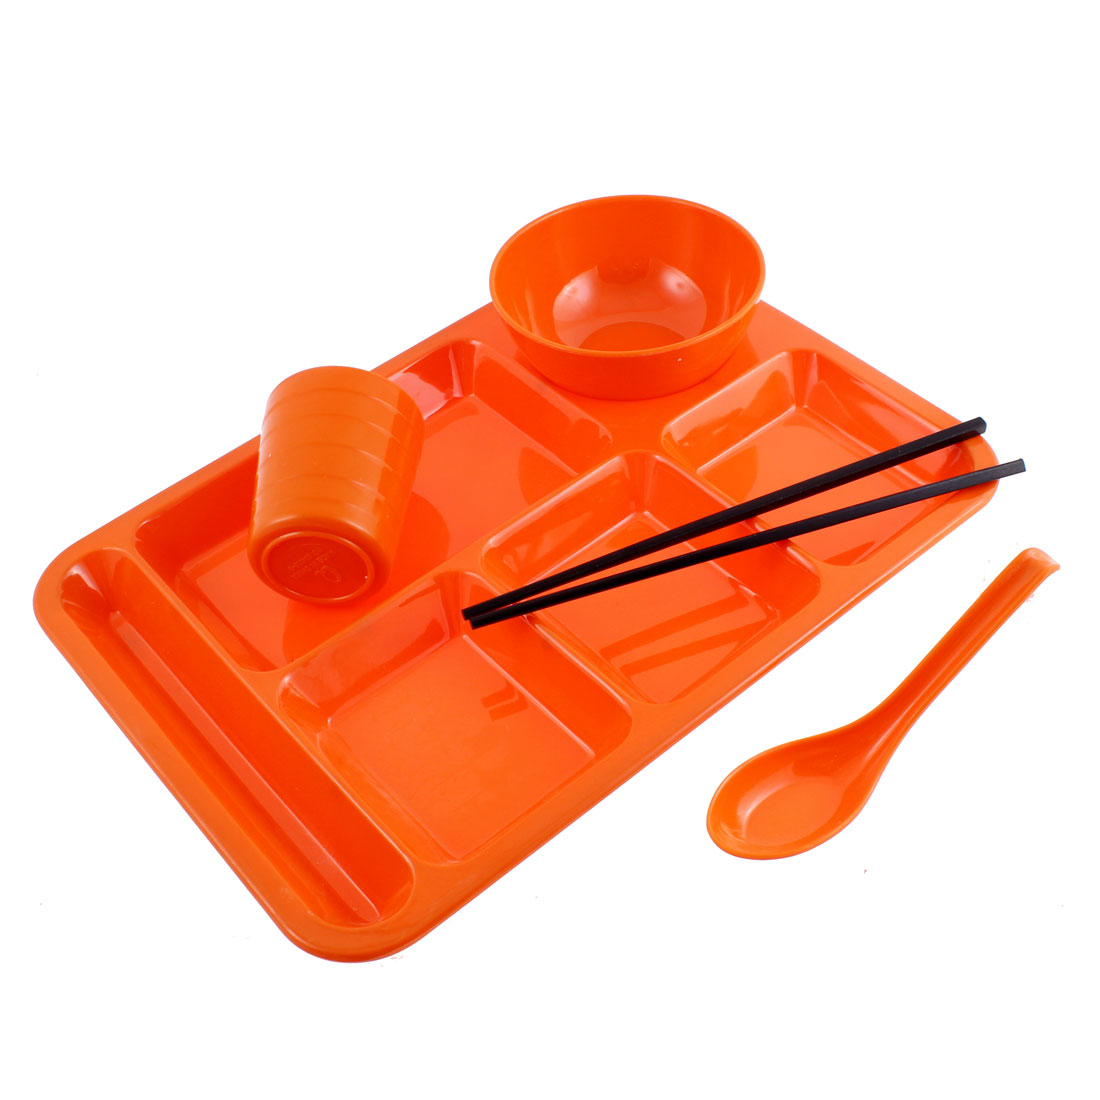 School 6 Compartments Divided Plate Bowl Spoon Chopsticks Cup Orangered 5 in 1